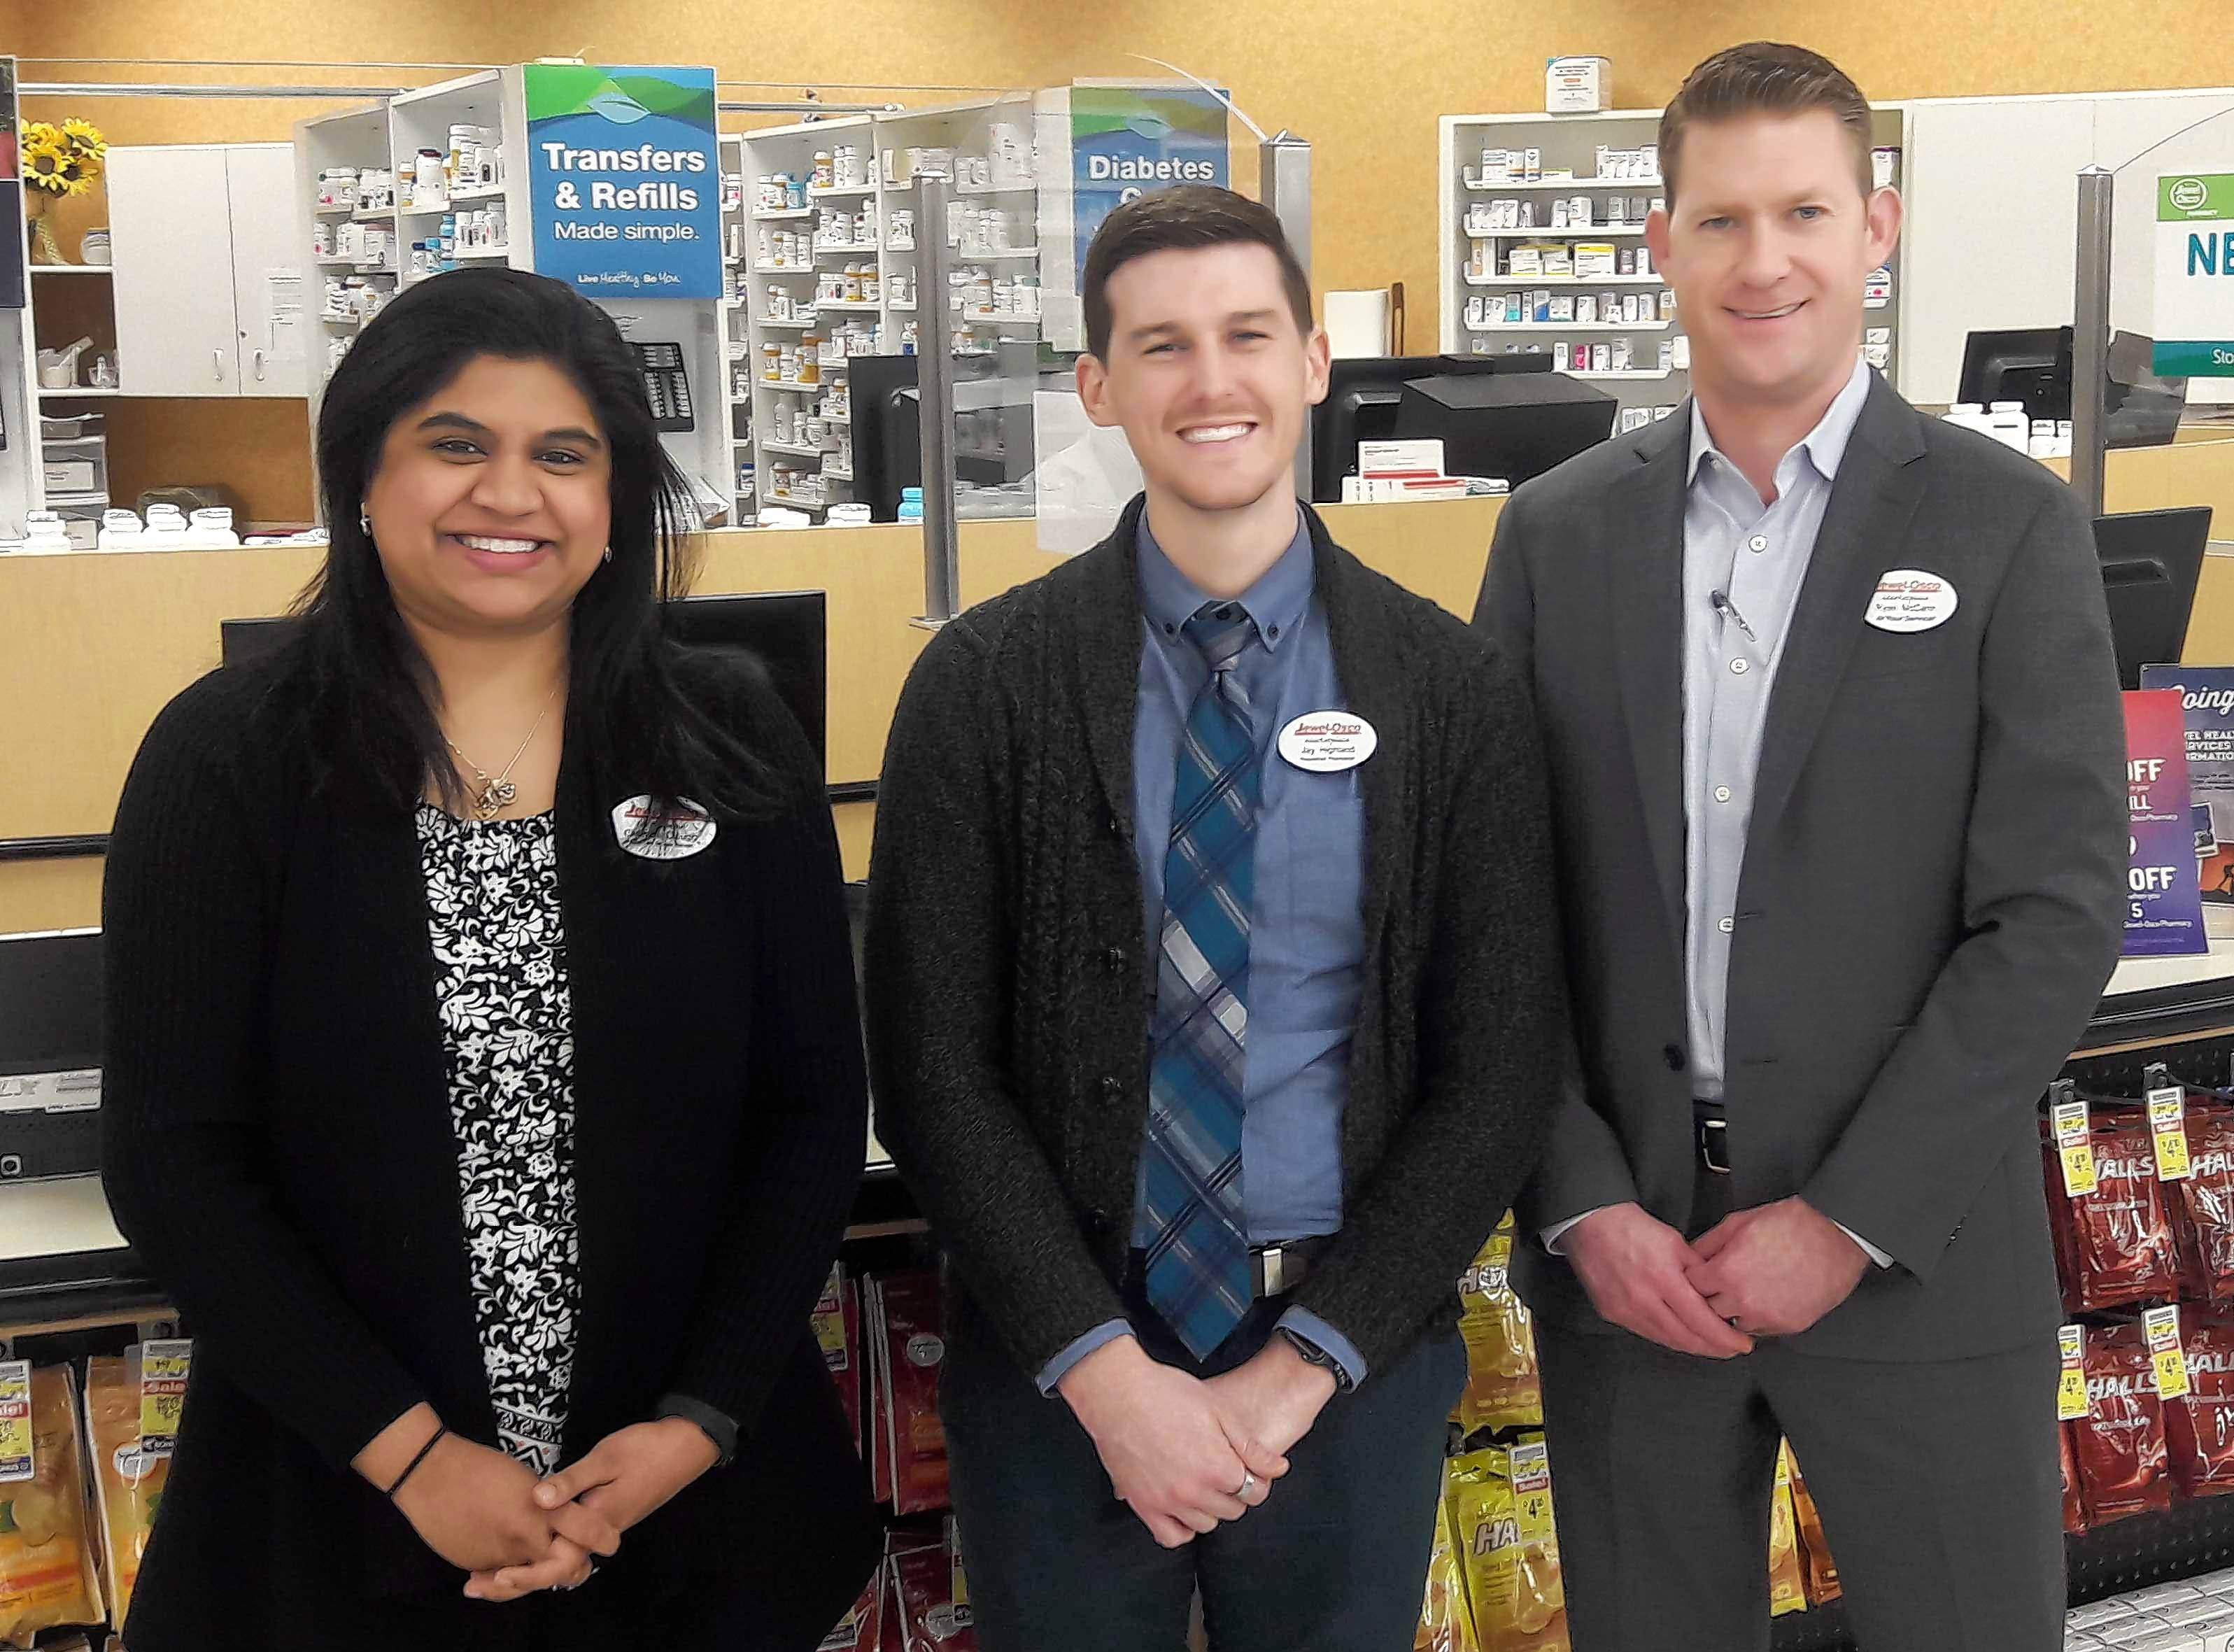 Pictured from left are Jewel-Osco Pharmacy employees Chandni Clough, PharmD, Patient Care Services Manager; Jay Highland, Patient Care Pharmacist, and Ryan L. McCann, PharmD, Director of Pharmacy Operations.